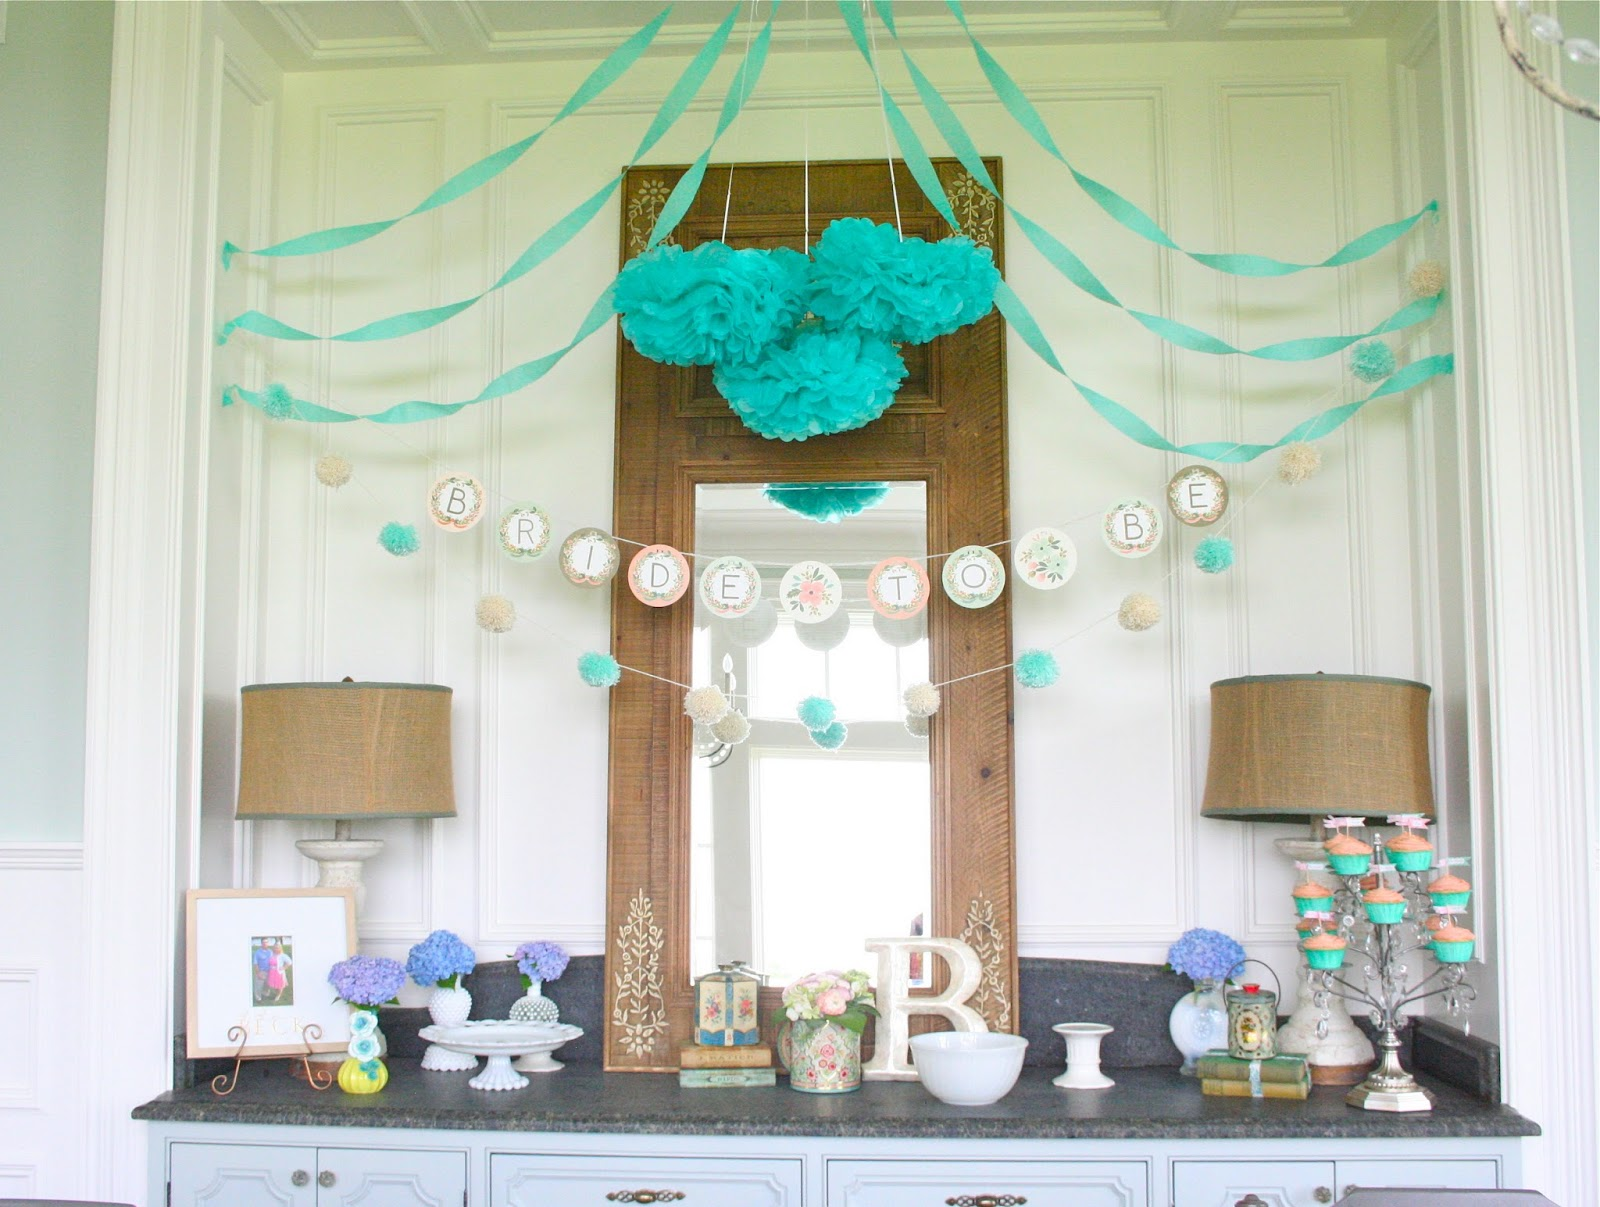 decorations for a wedding shower 33 beautiful bridal shower decorations ideas table 3426